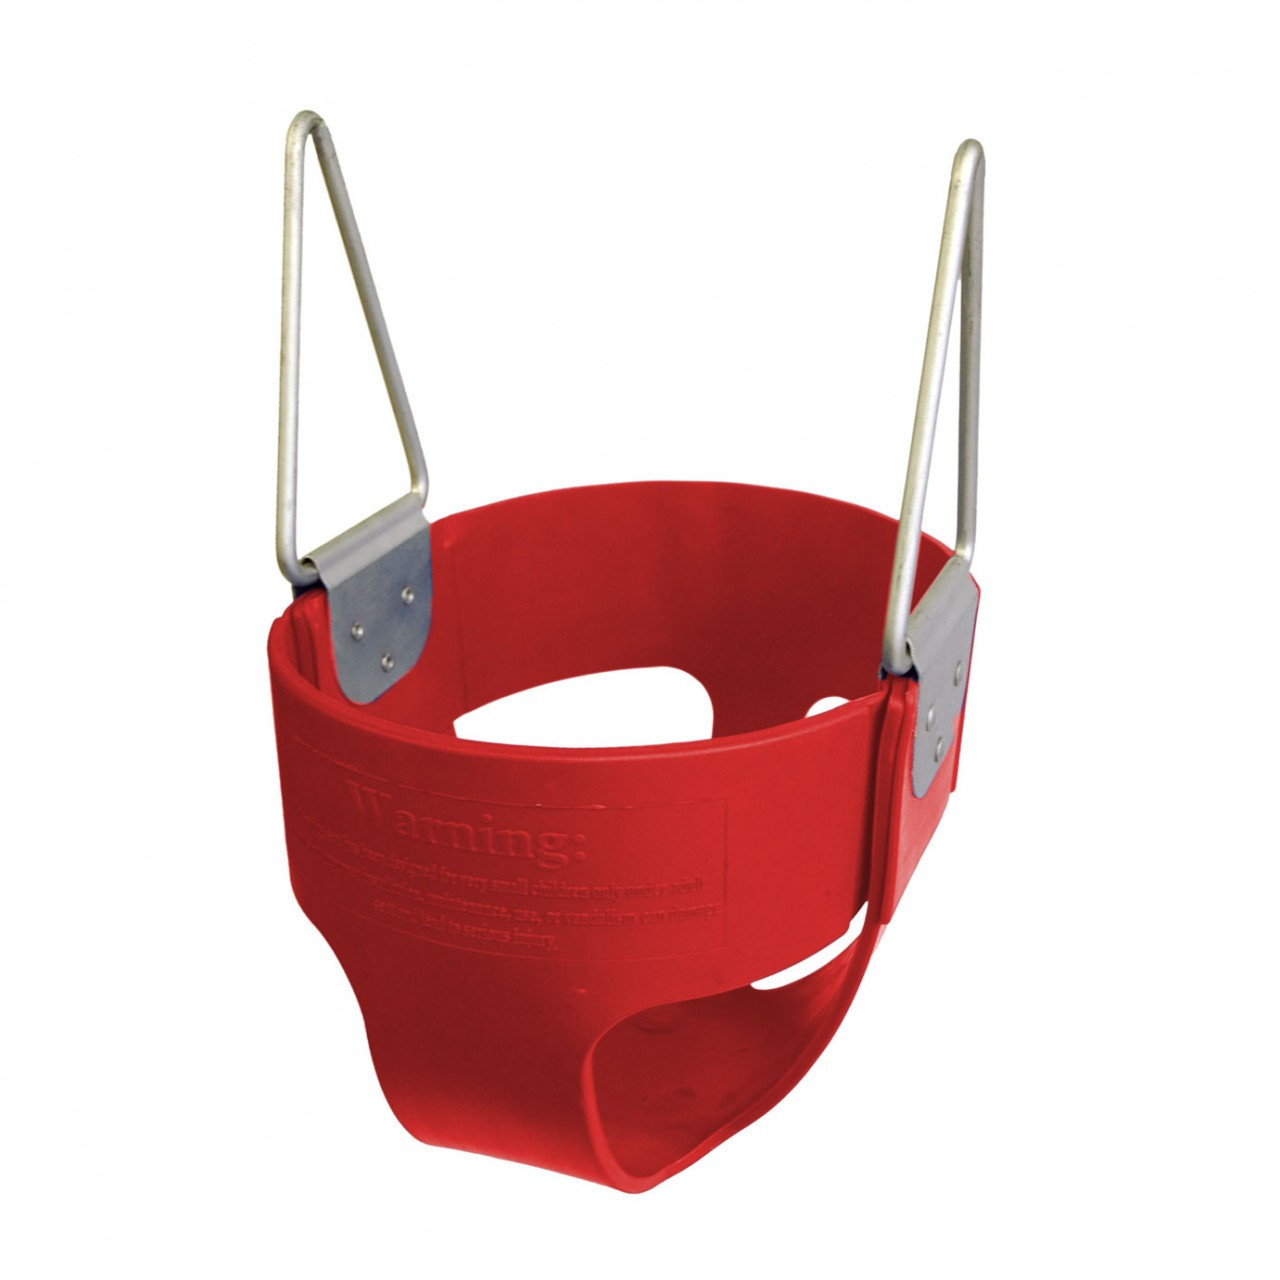 Commercial Rubber Full Bucket Swing Seat - Red